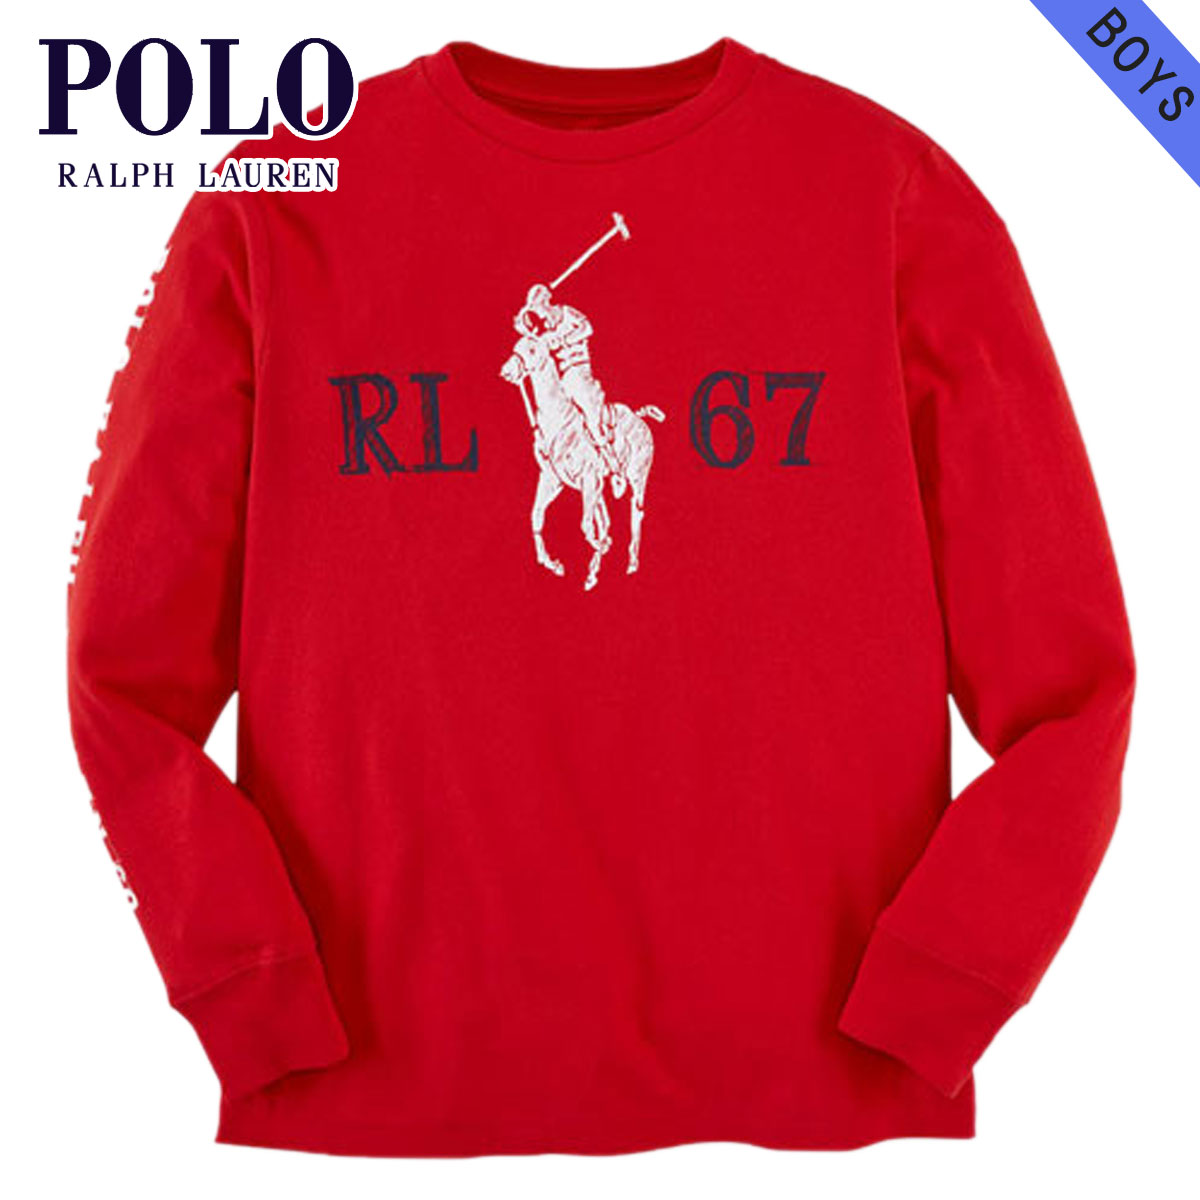 ac41bbc54 Rakuten Ichiba shop MIXON: Polo Ralph Lauren kids POLO RALPH LAUREN CHILDREN  regular article children's clothes Boys long sleeves T-shirt COTTON GR ...